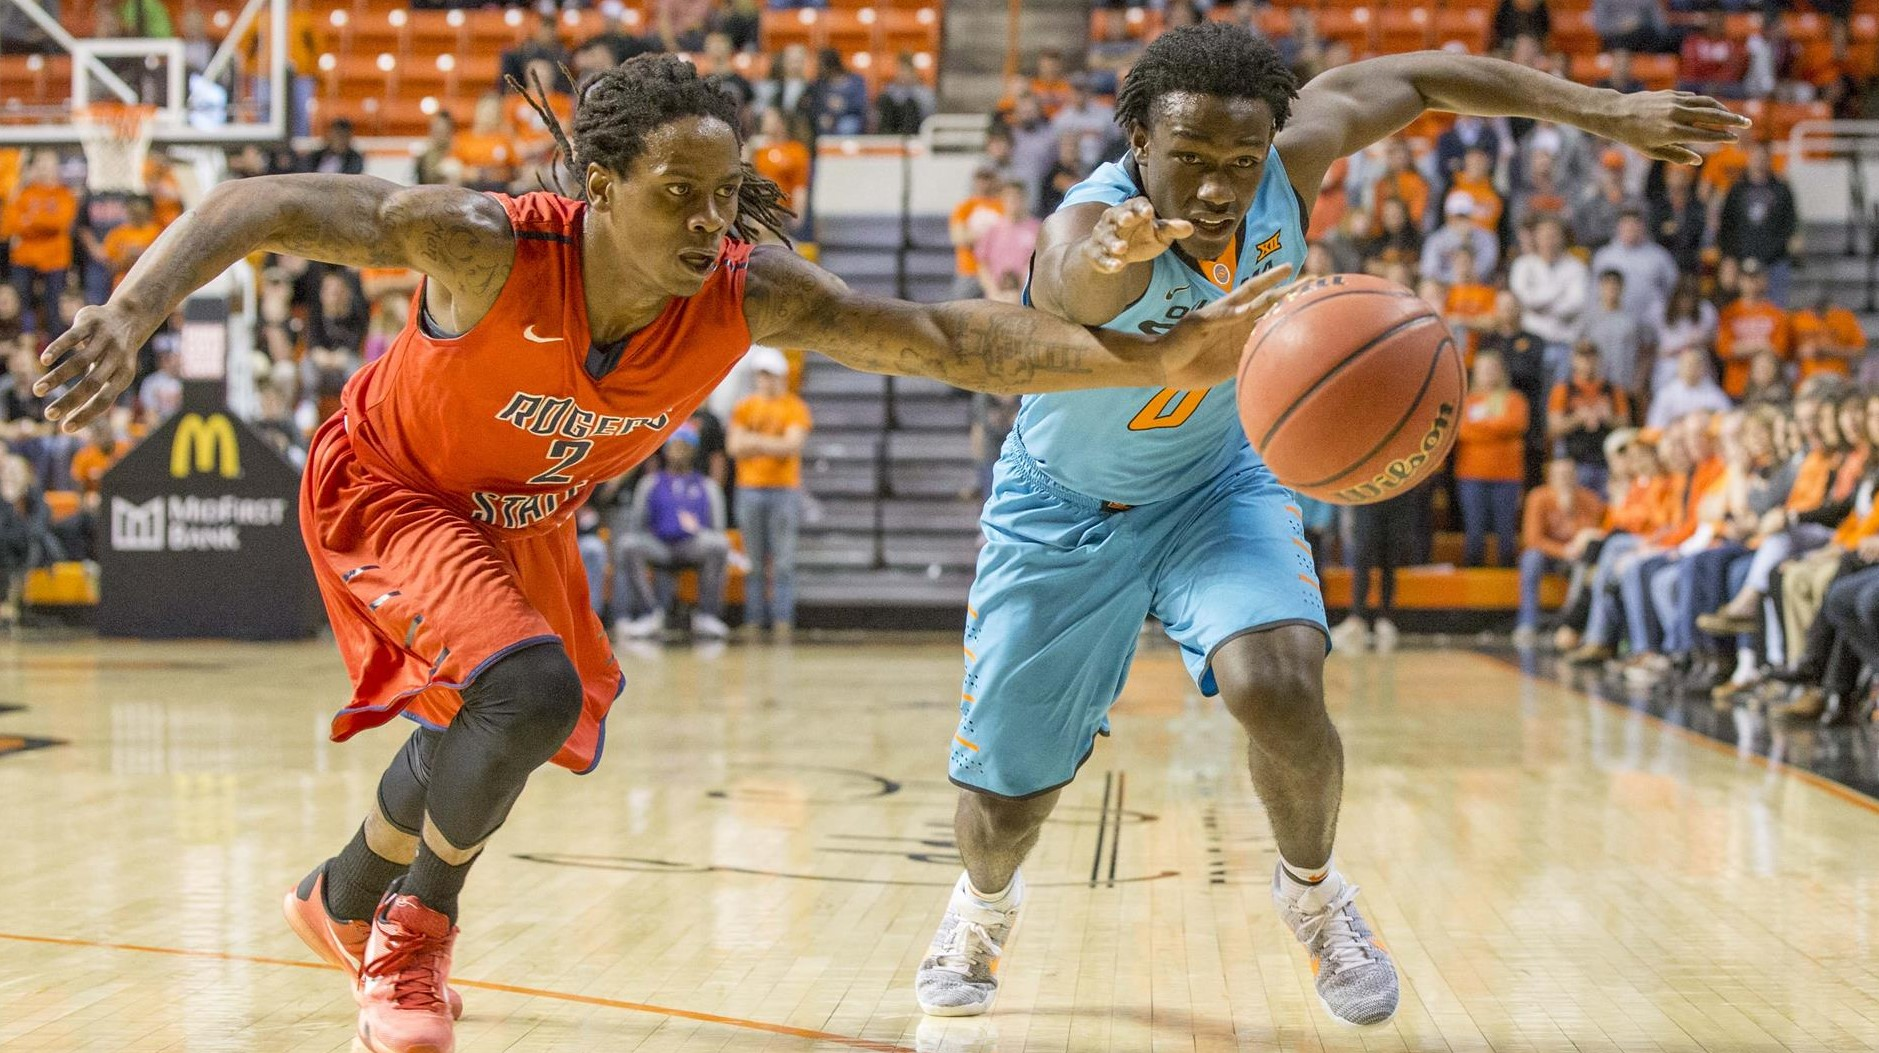 Oklahoma_state_cowboys_vs_rogers_state_hillcats_mens_basketball_game_wednesday_november_30_2016_gallagher_iba_arena_stillwater_ok_bruce_waterfieldosu_athletics_31202023552_o